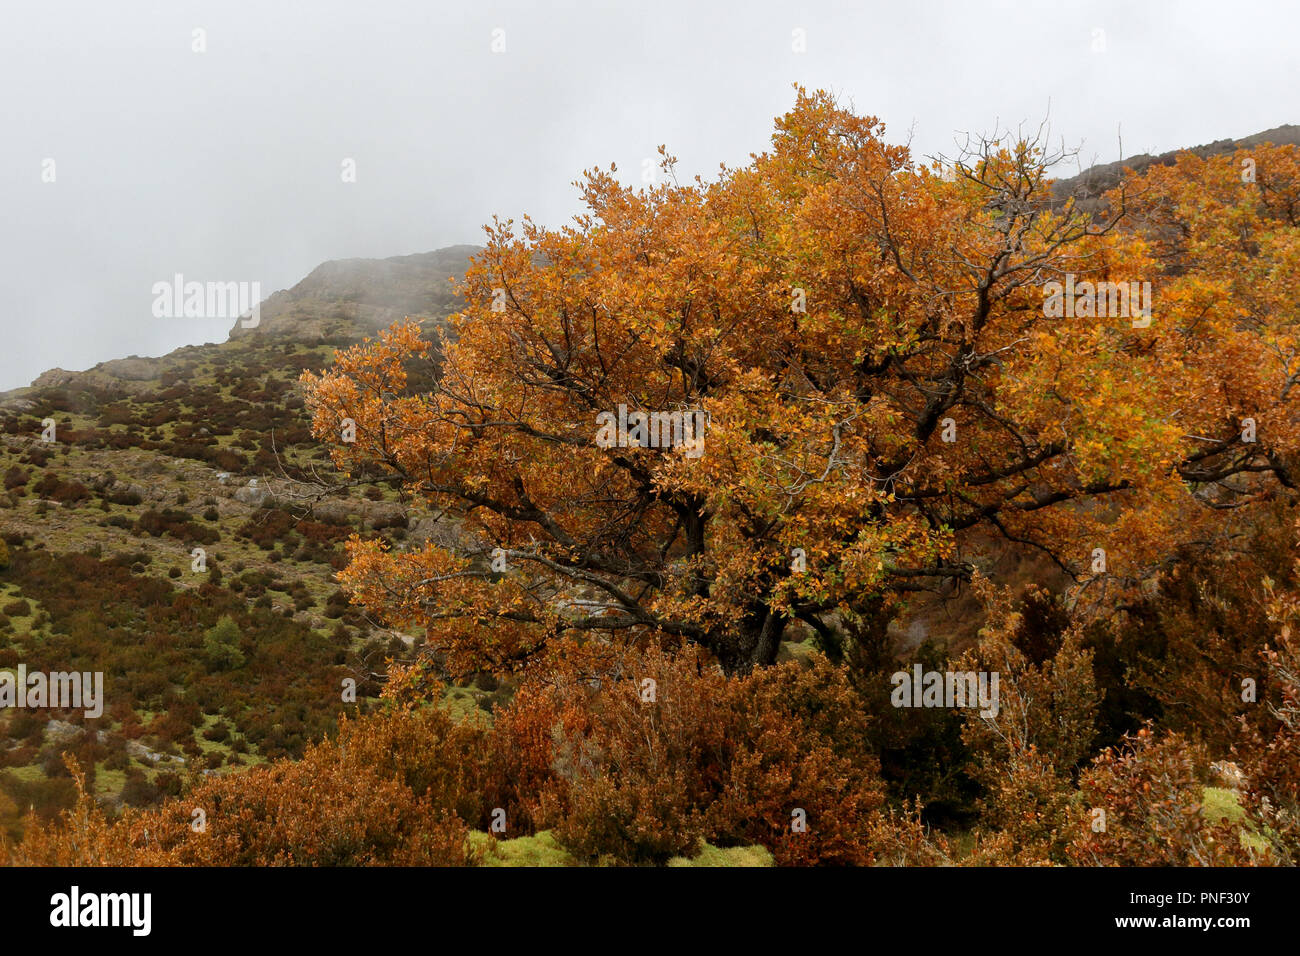 A big yellow tree in the foggy mountains and hills in autumn while while hiking from Yebra de Basa town to Santa Orosia church on the Pyrenees, Spain Stock Photo